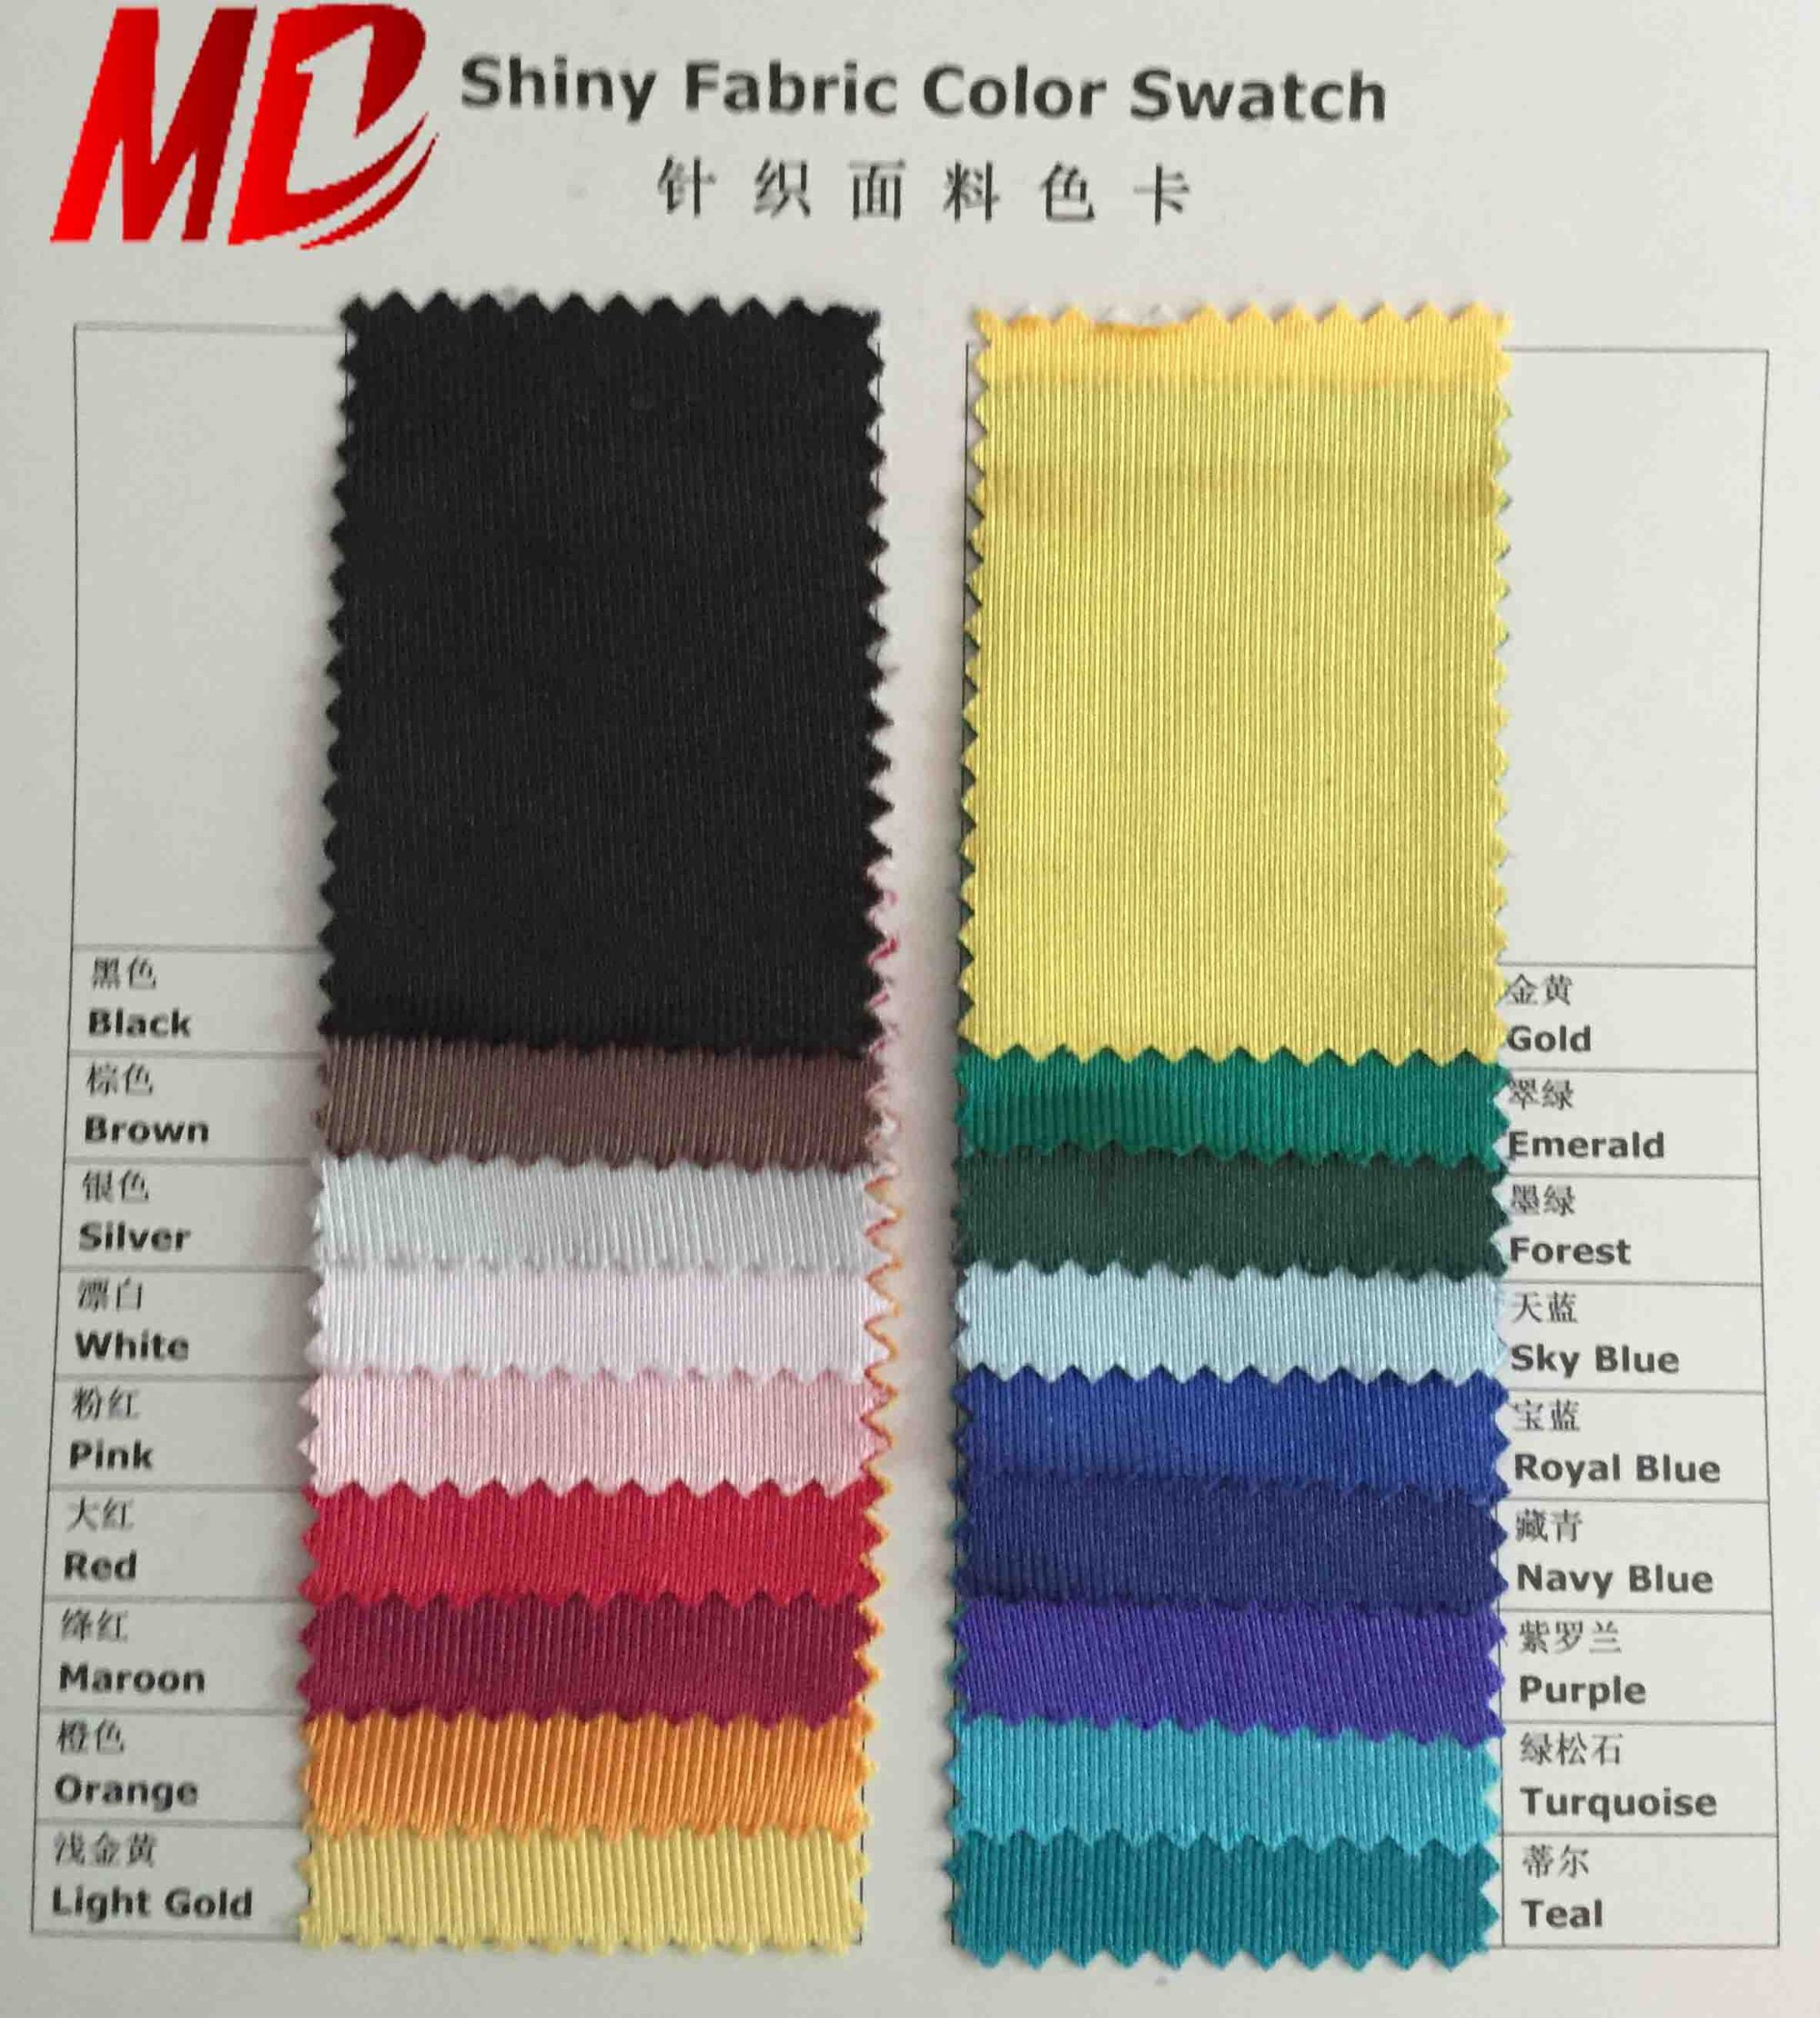 SHINY FABRIC COLOR SWATCH